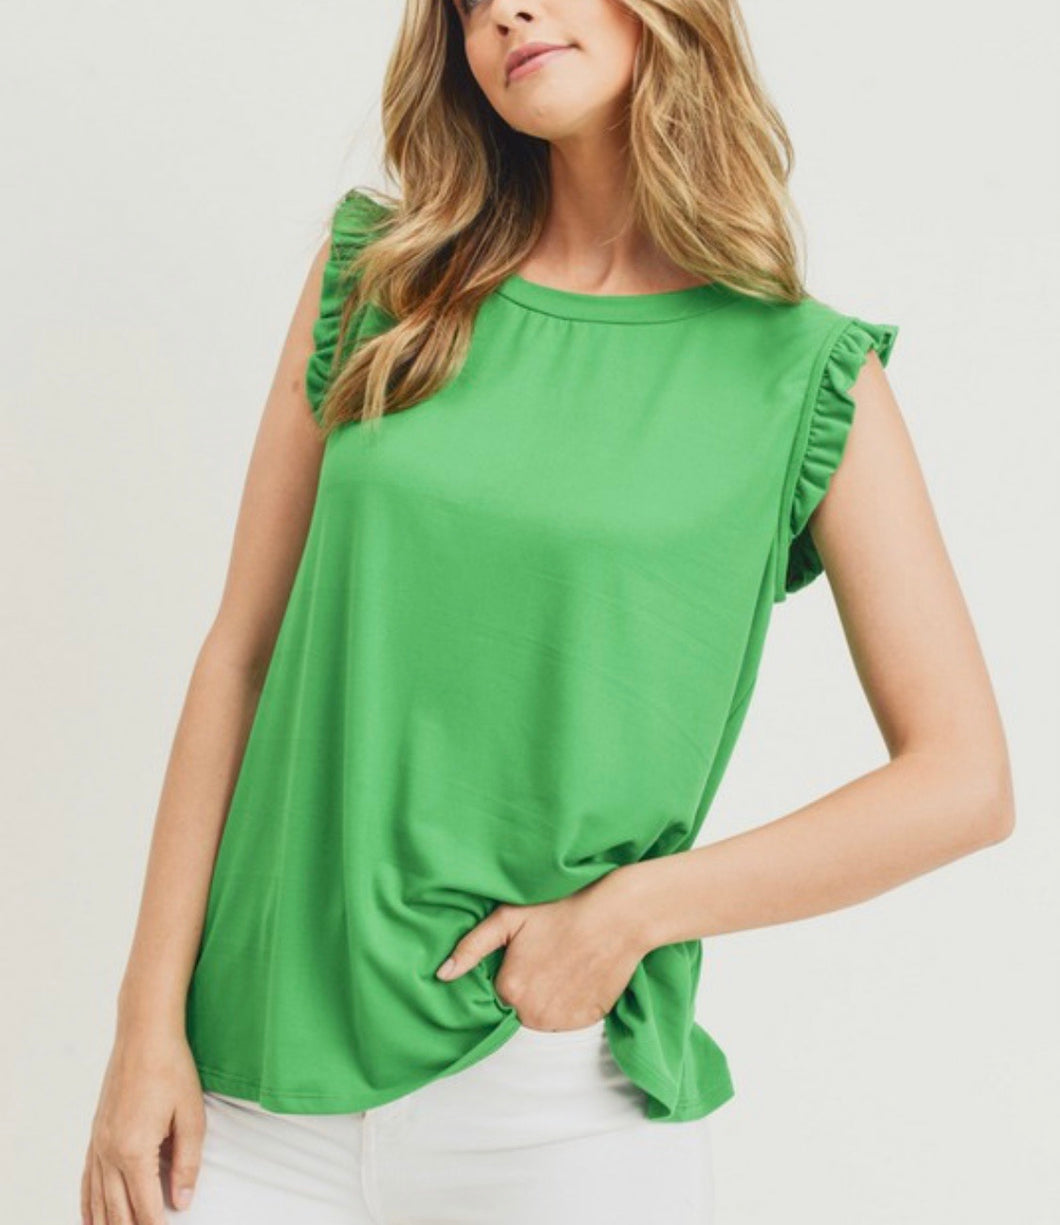 Ruffled Shoukder Tank